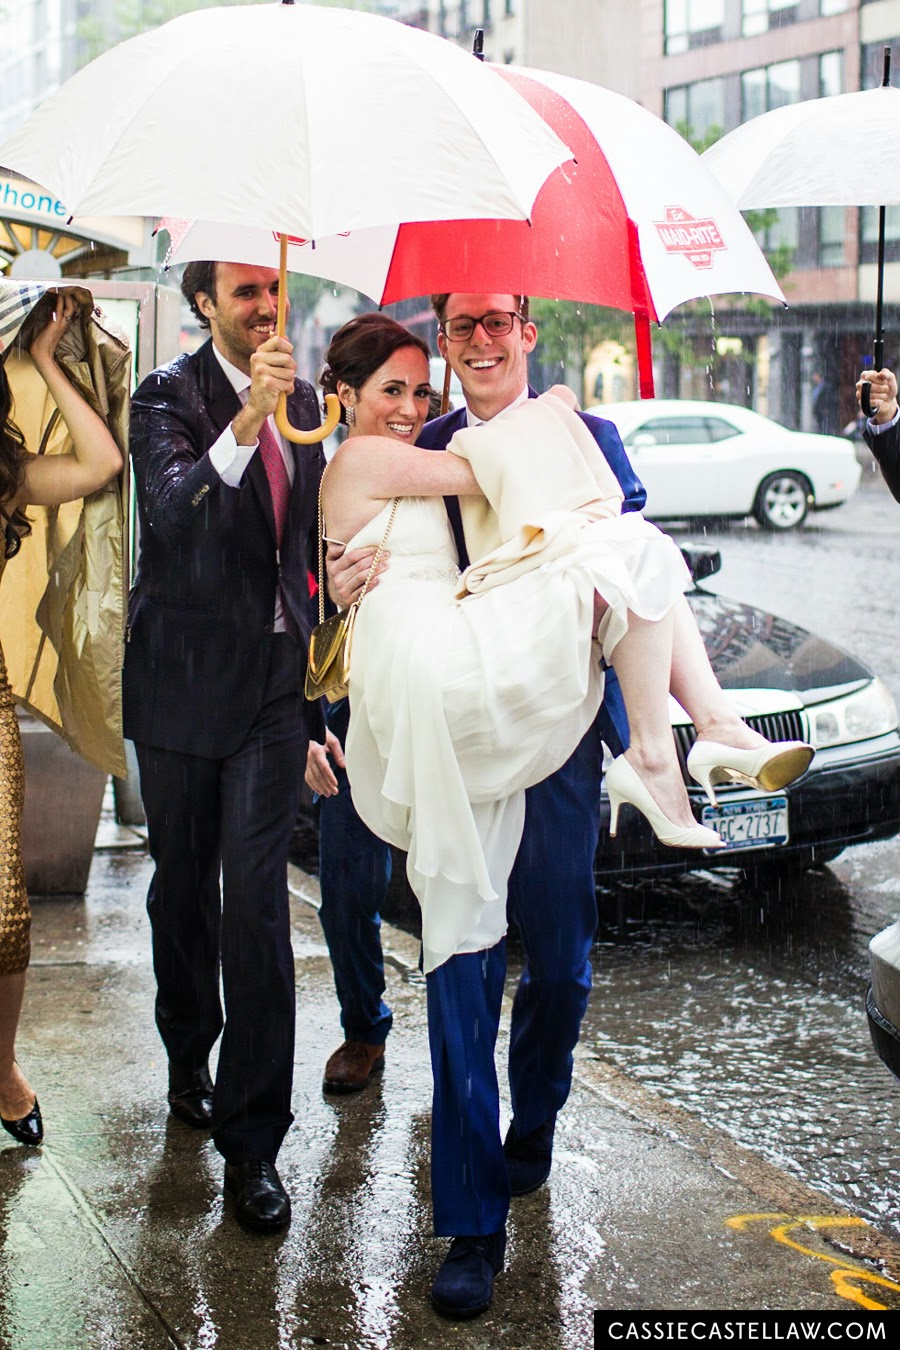 Bridal party with umbrellas sheilding groom carrying bride in the pouring rain. NYC Lifestyle wedding photography by Cassie Castellaw. www.cassiecastellaw.com